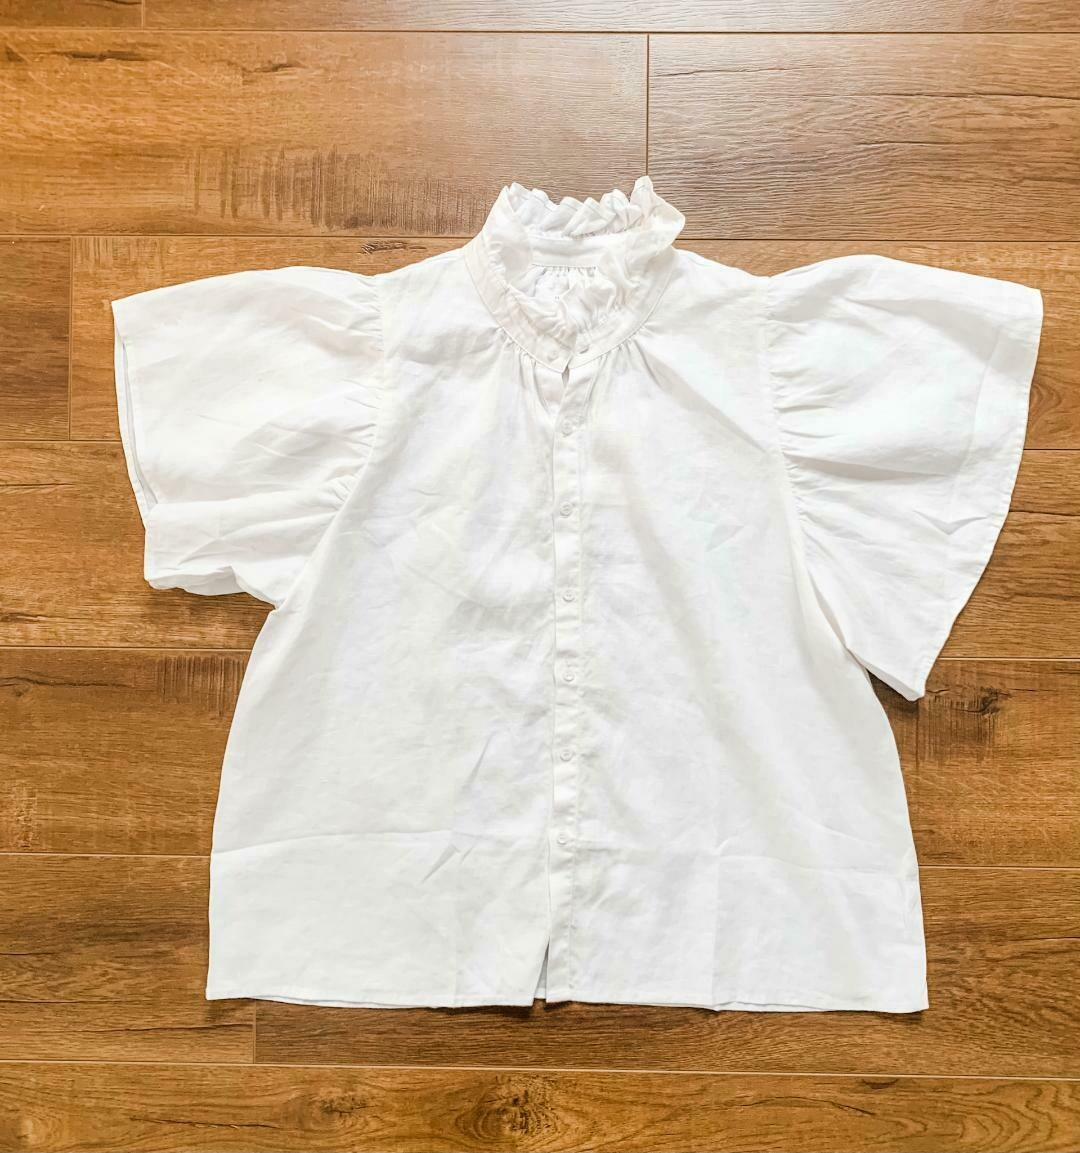 ACACIA  - Mimi Cotton Top in Ivory